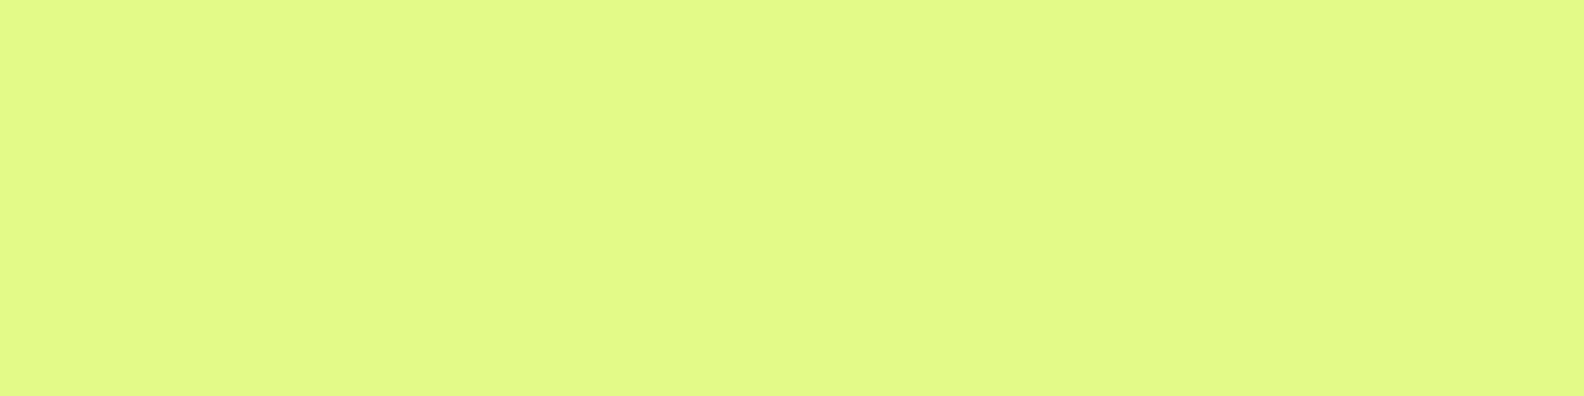 1584x396 Midori Solid Color Background